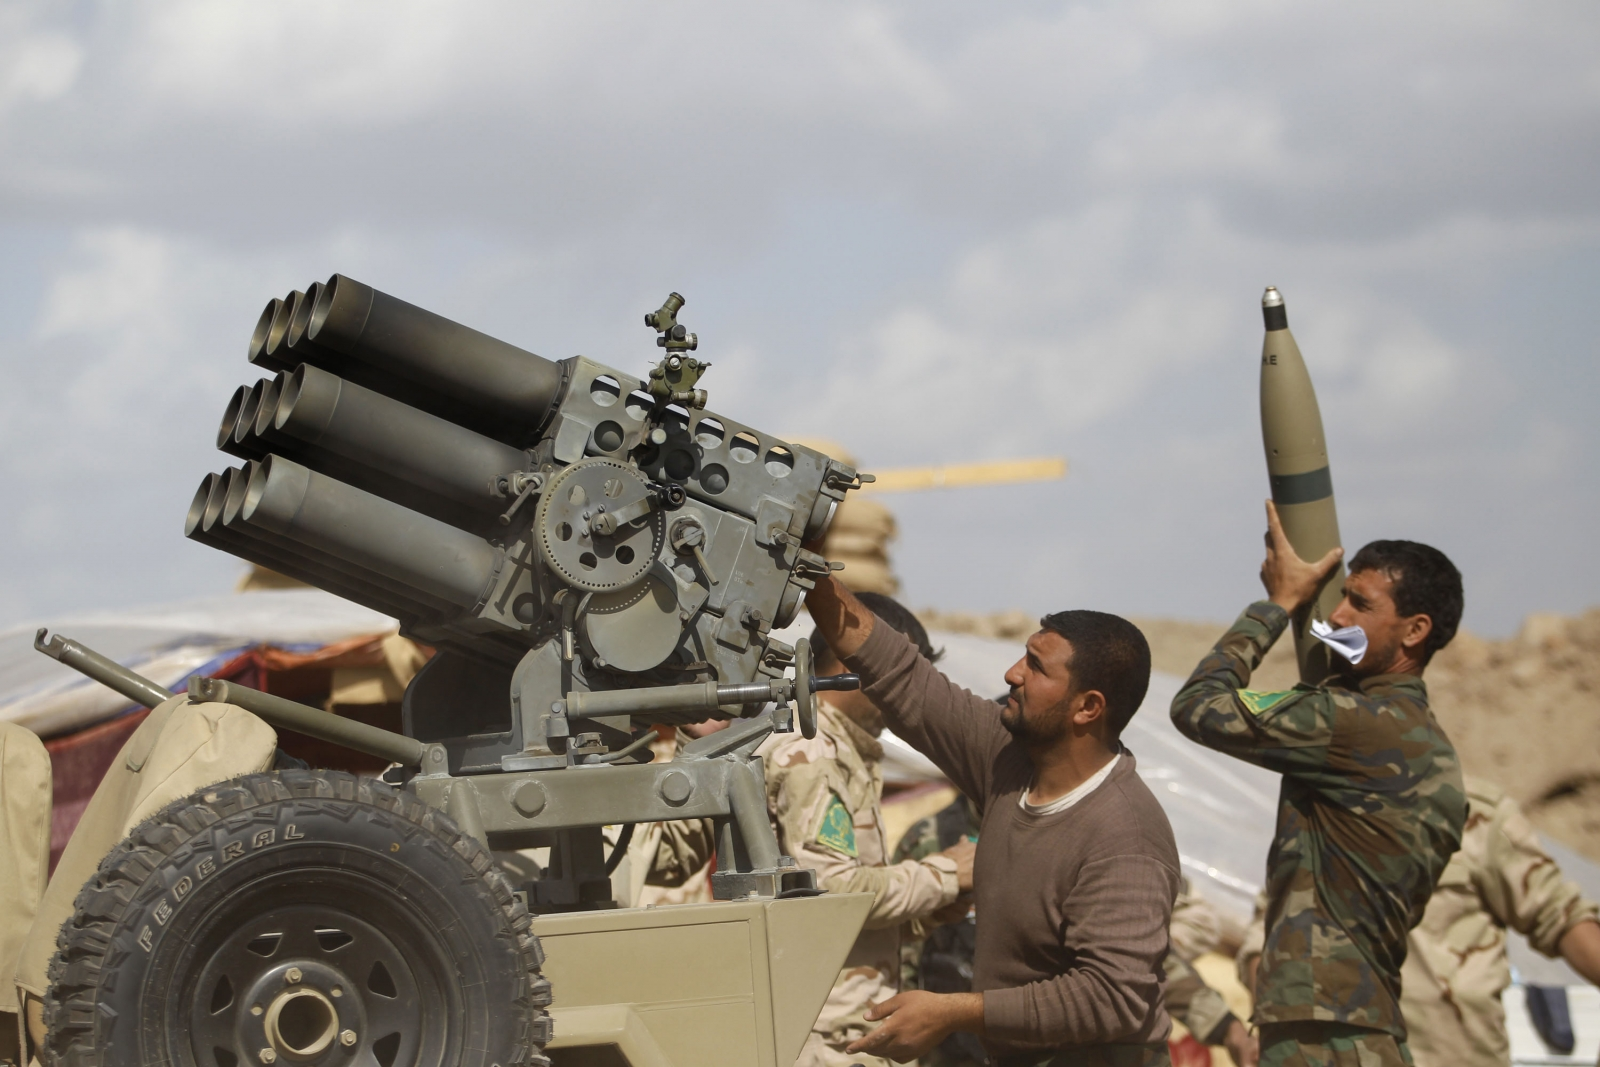 Iraqi forces launch a rocket attack